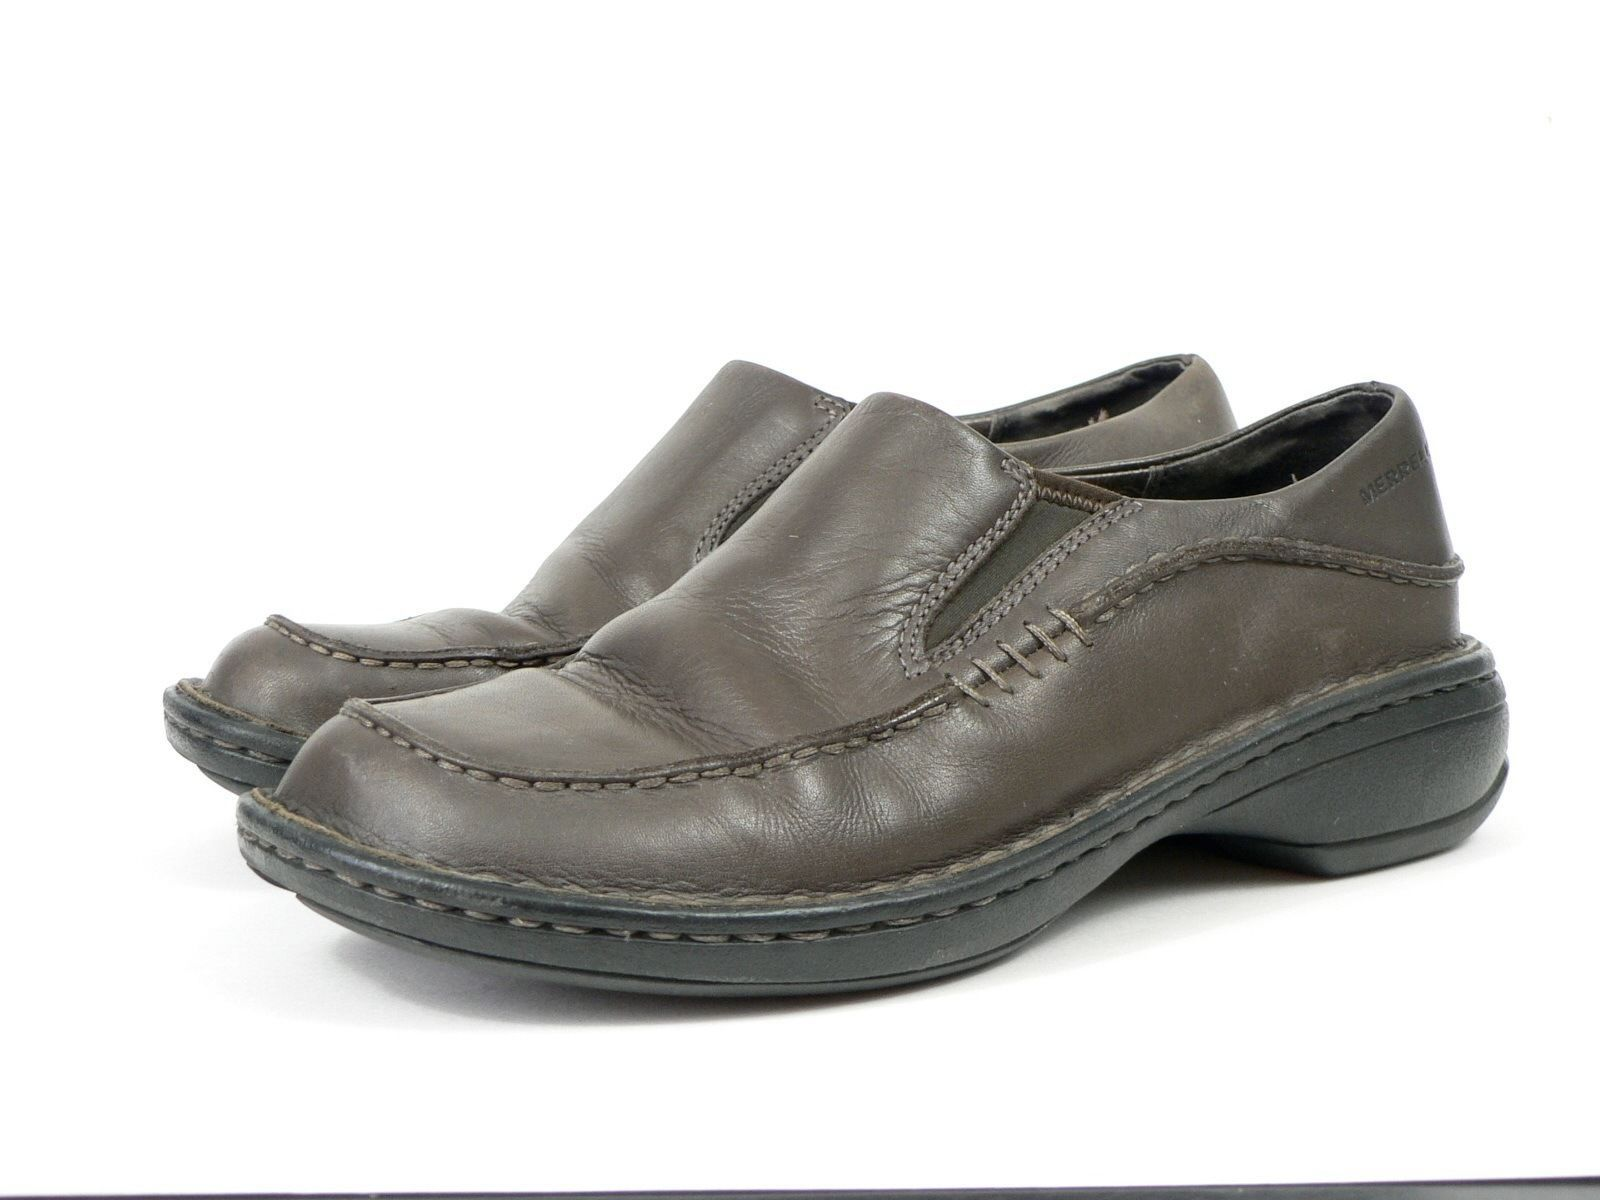 Womens Brown Merrell Tetra Moc Shoes Size 7M Leather Mules Casual Shoes Slip Ons